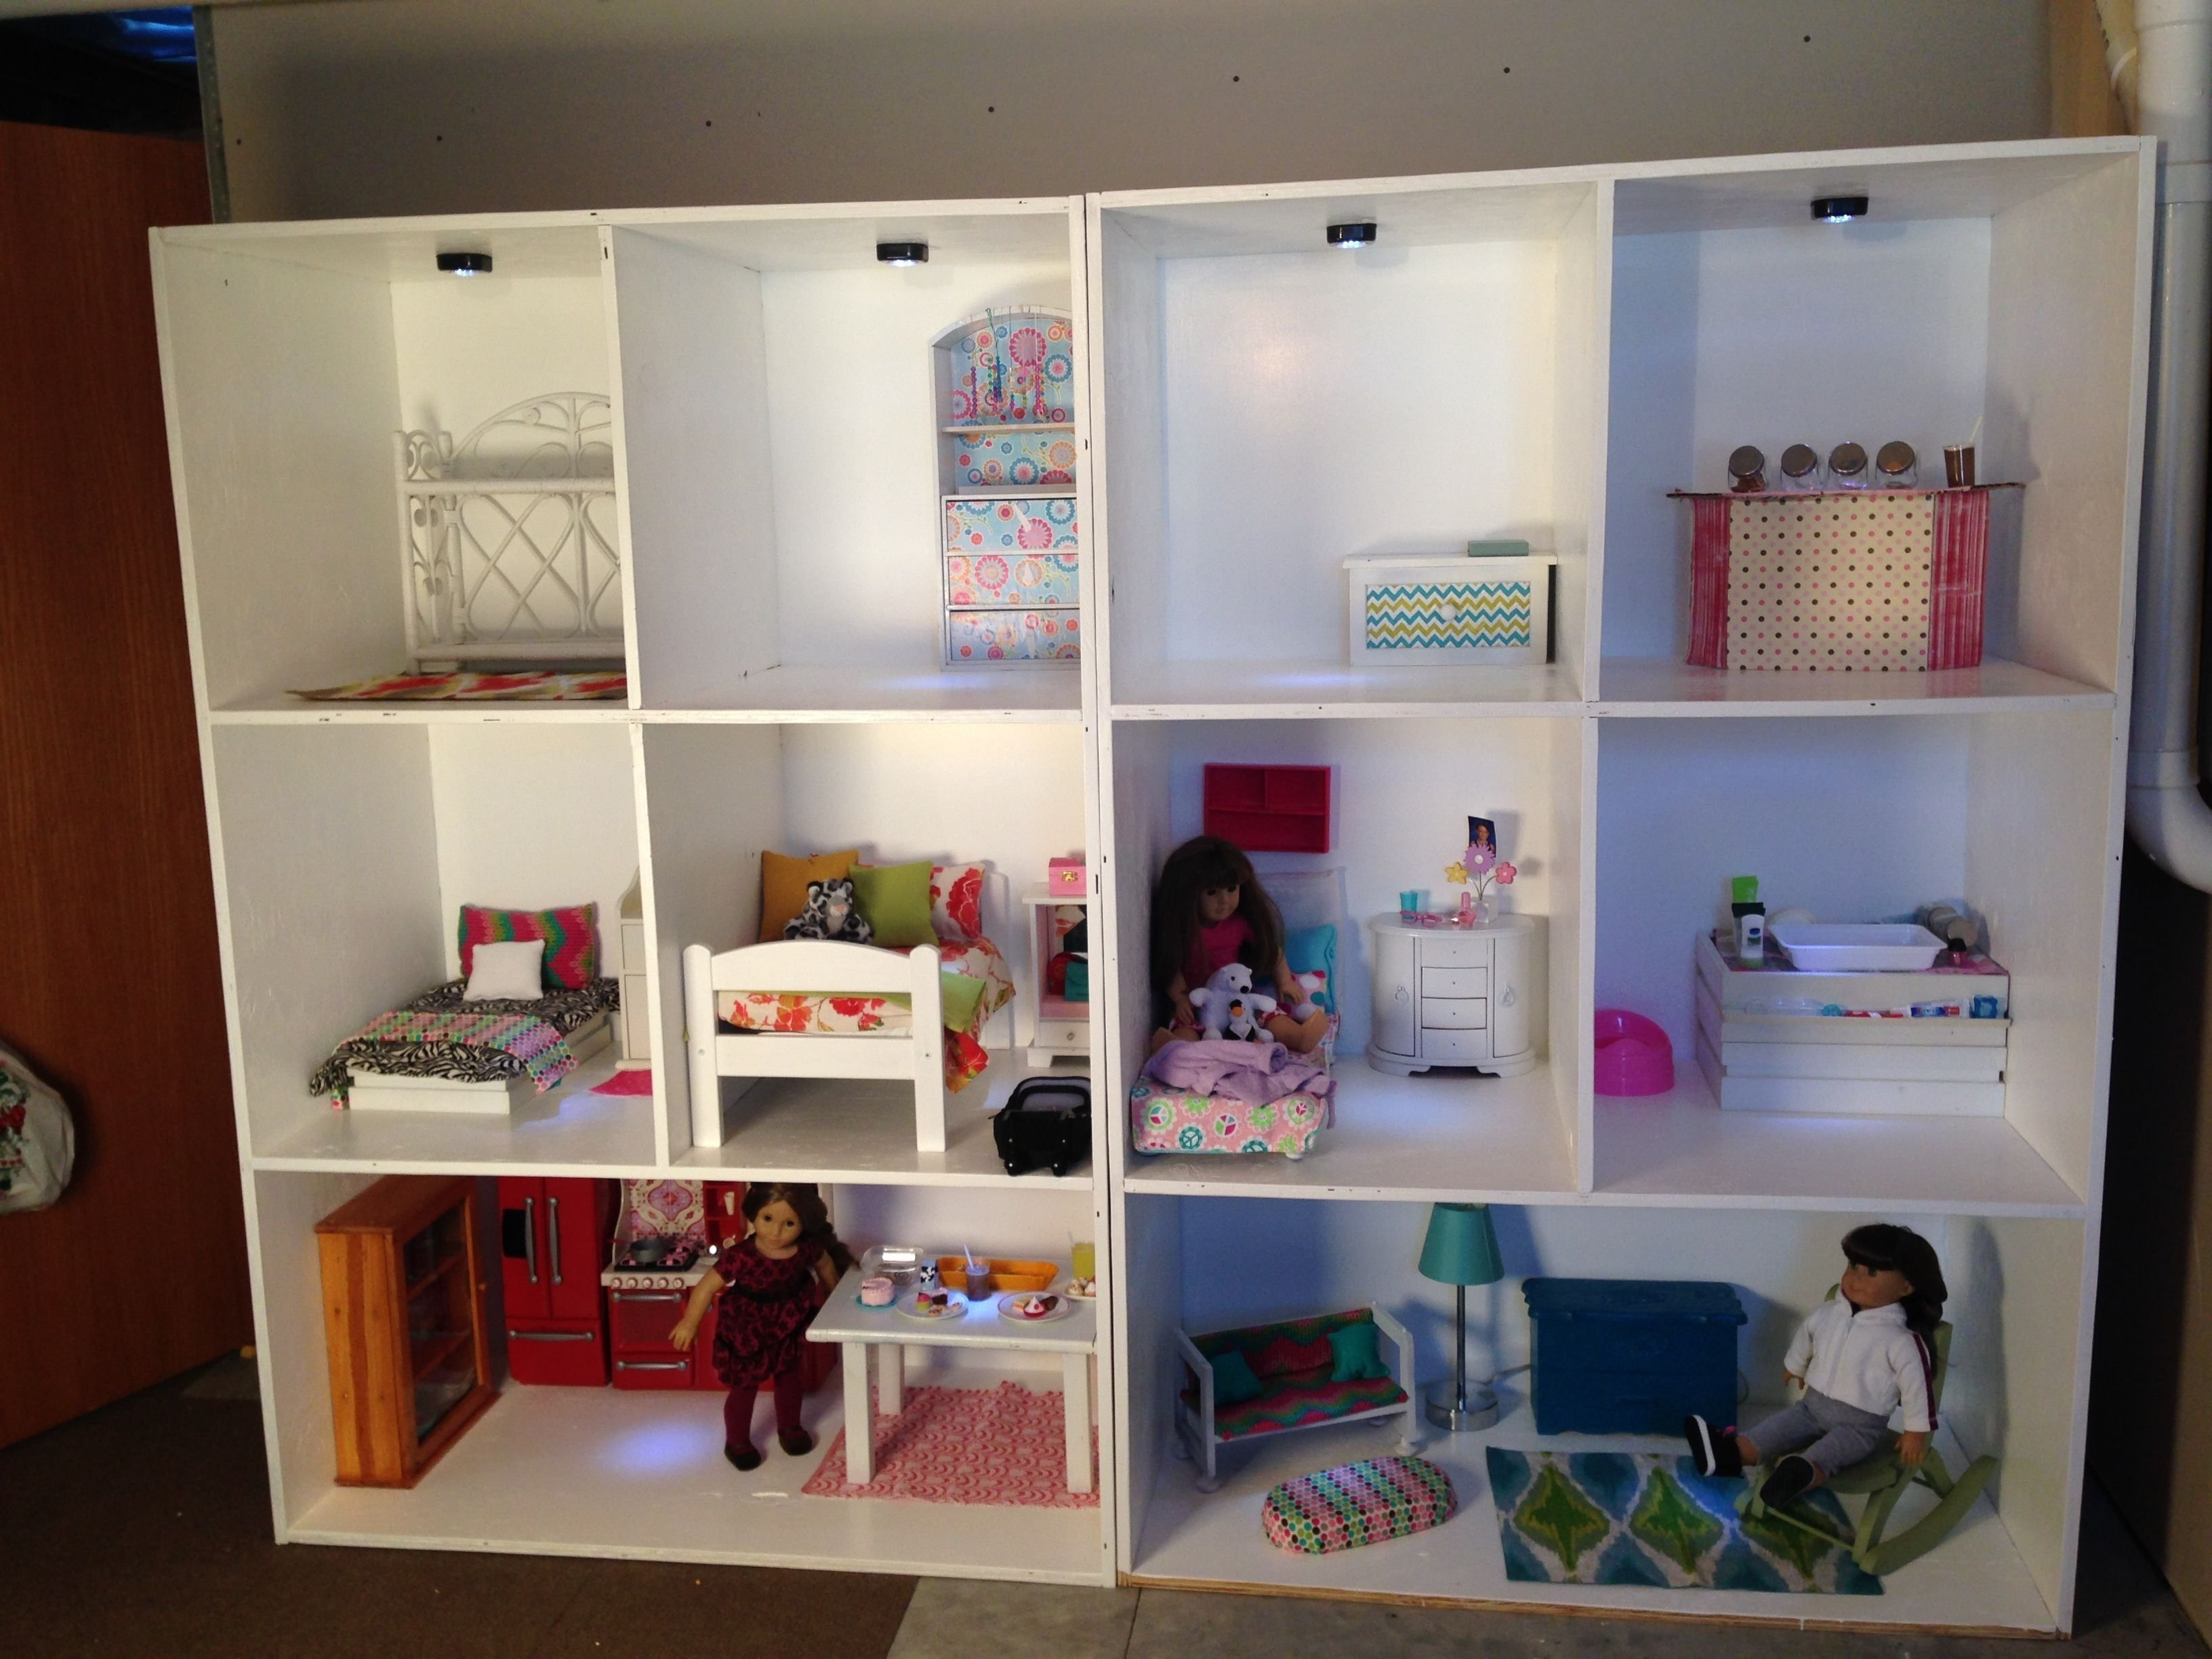 diy american girl dollhouse | diy american girl doll house | ag doll